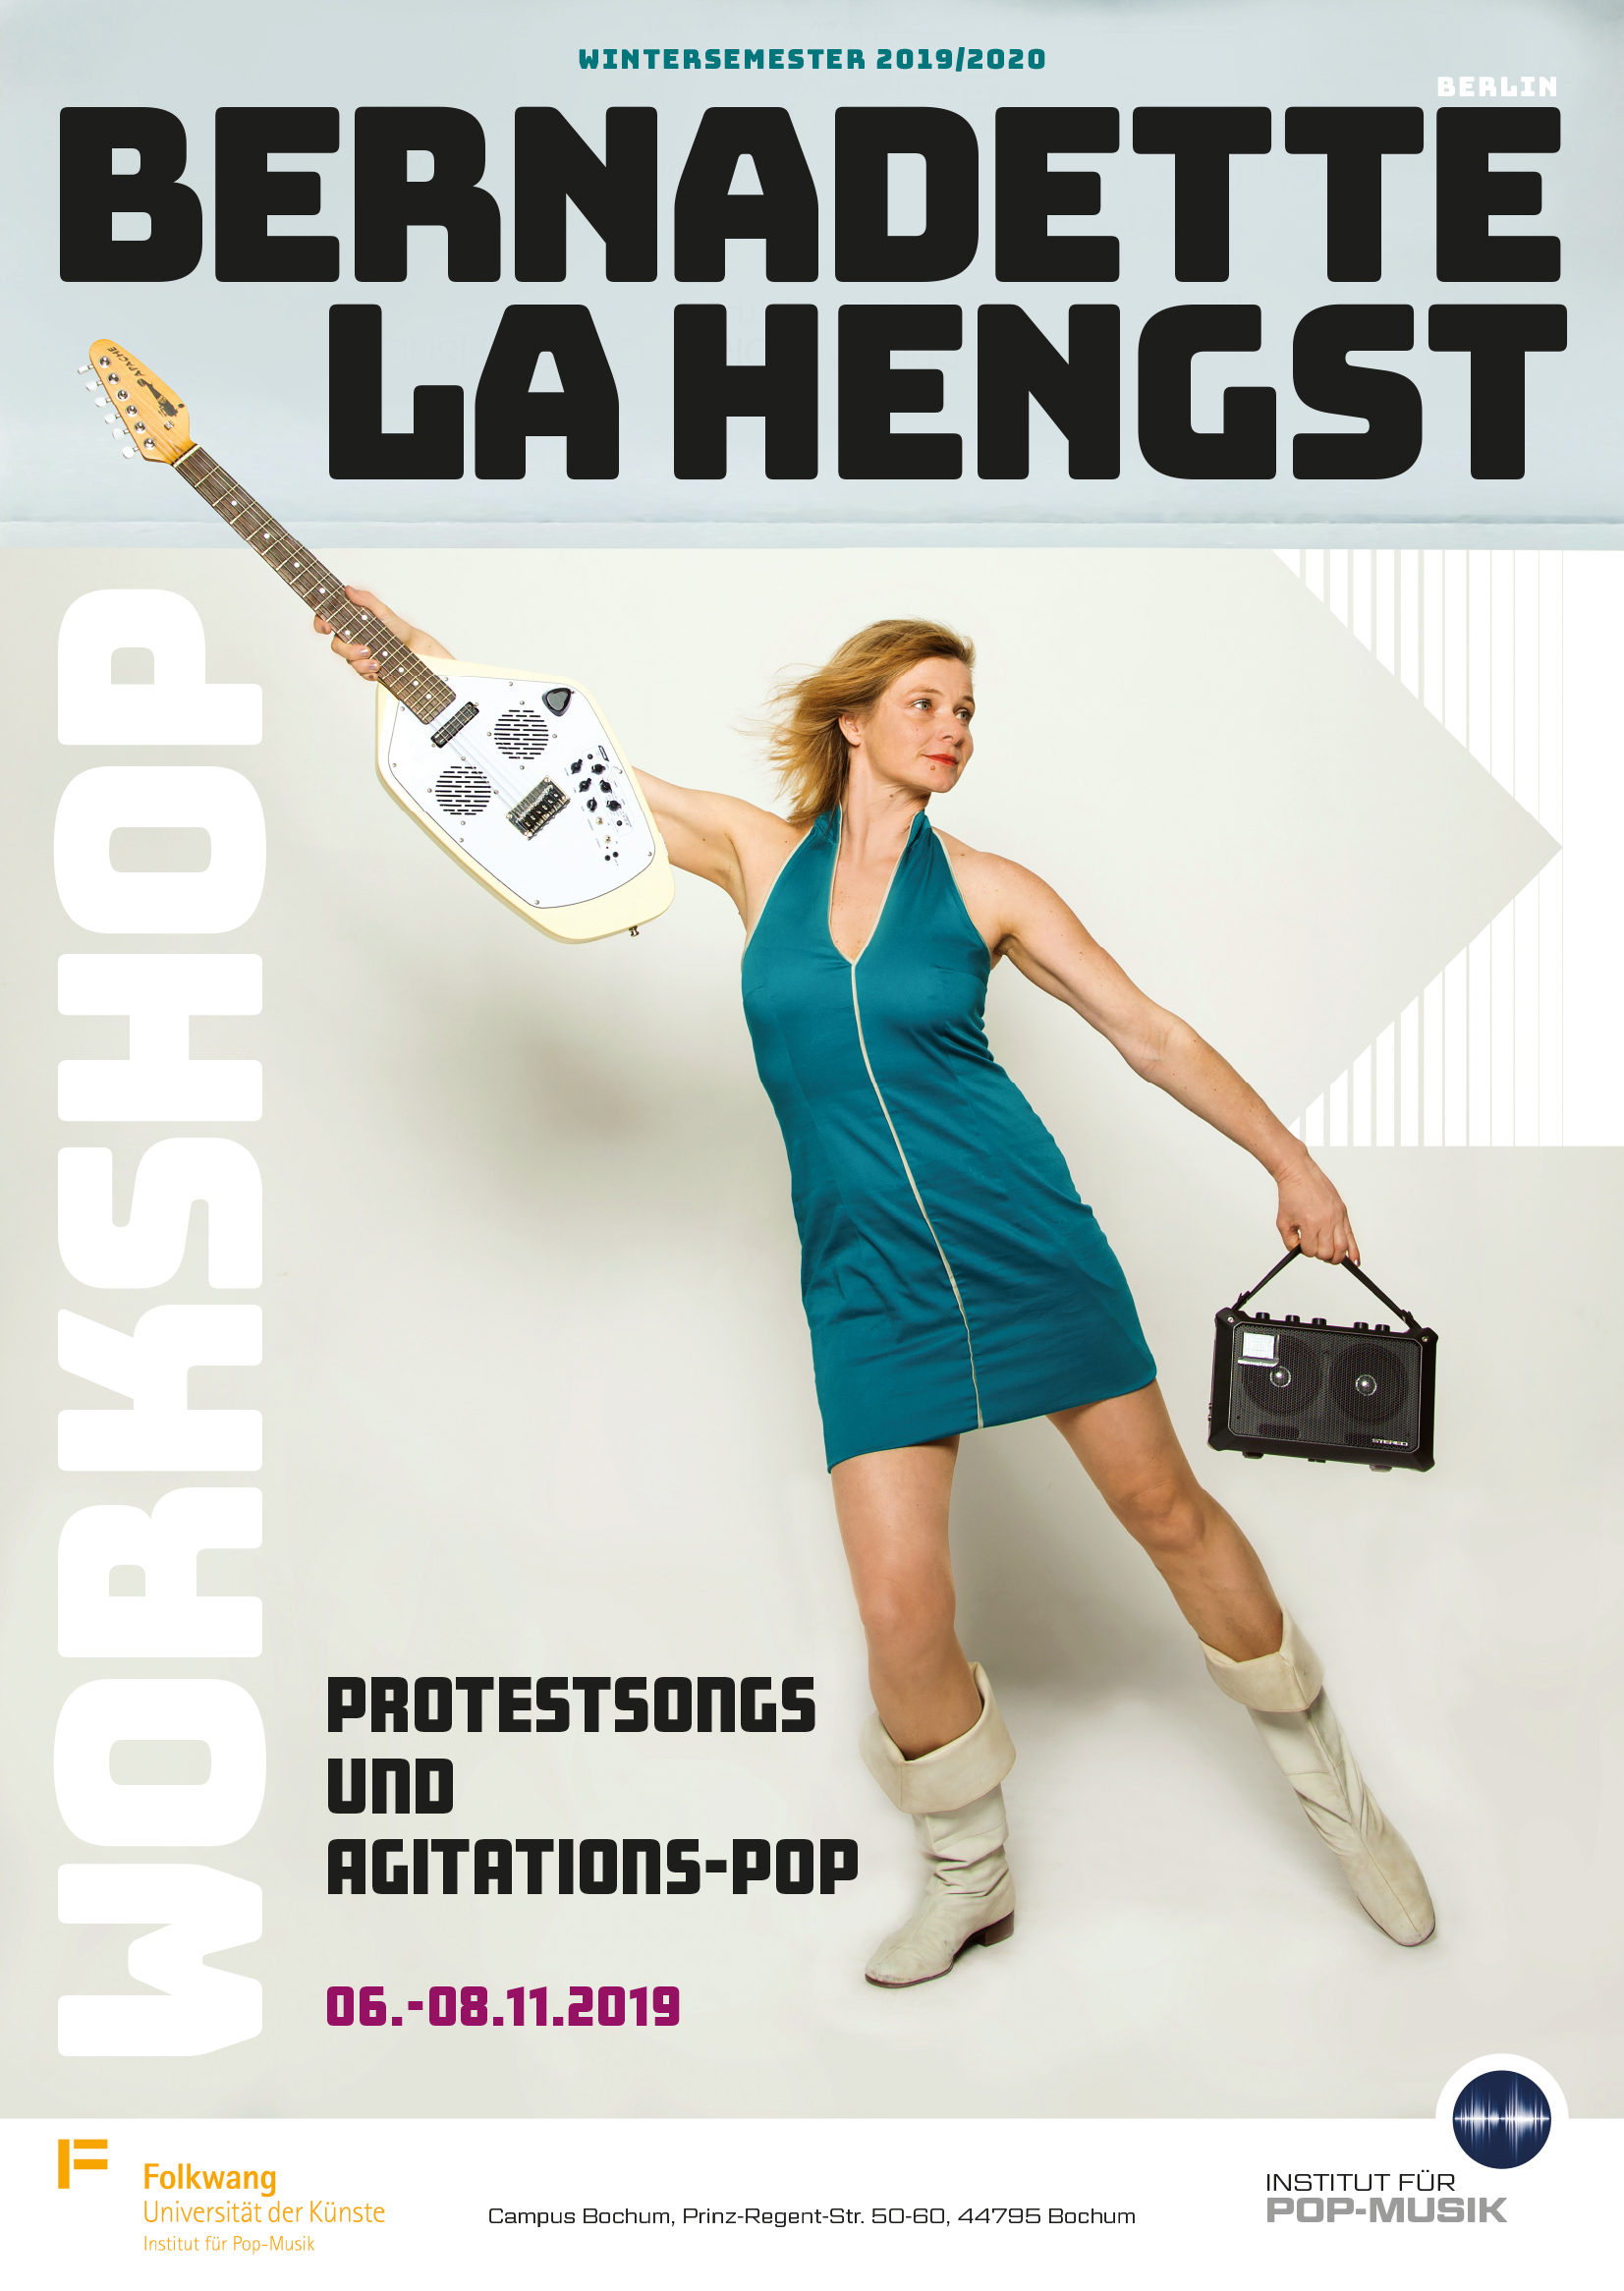 Bernadette La Hengst - Protestsongs und Agitationspop